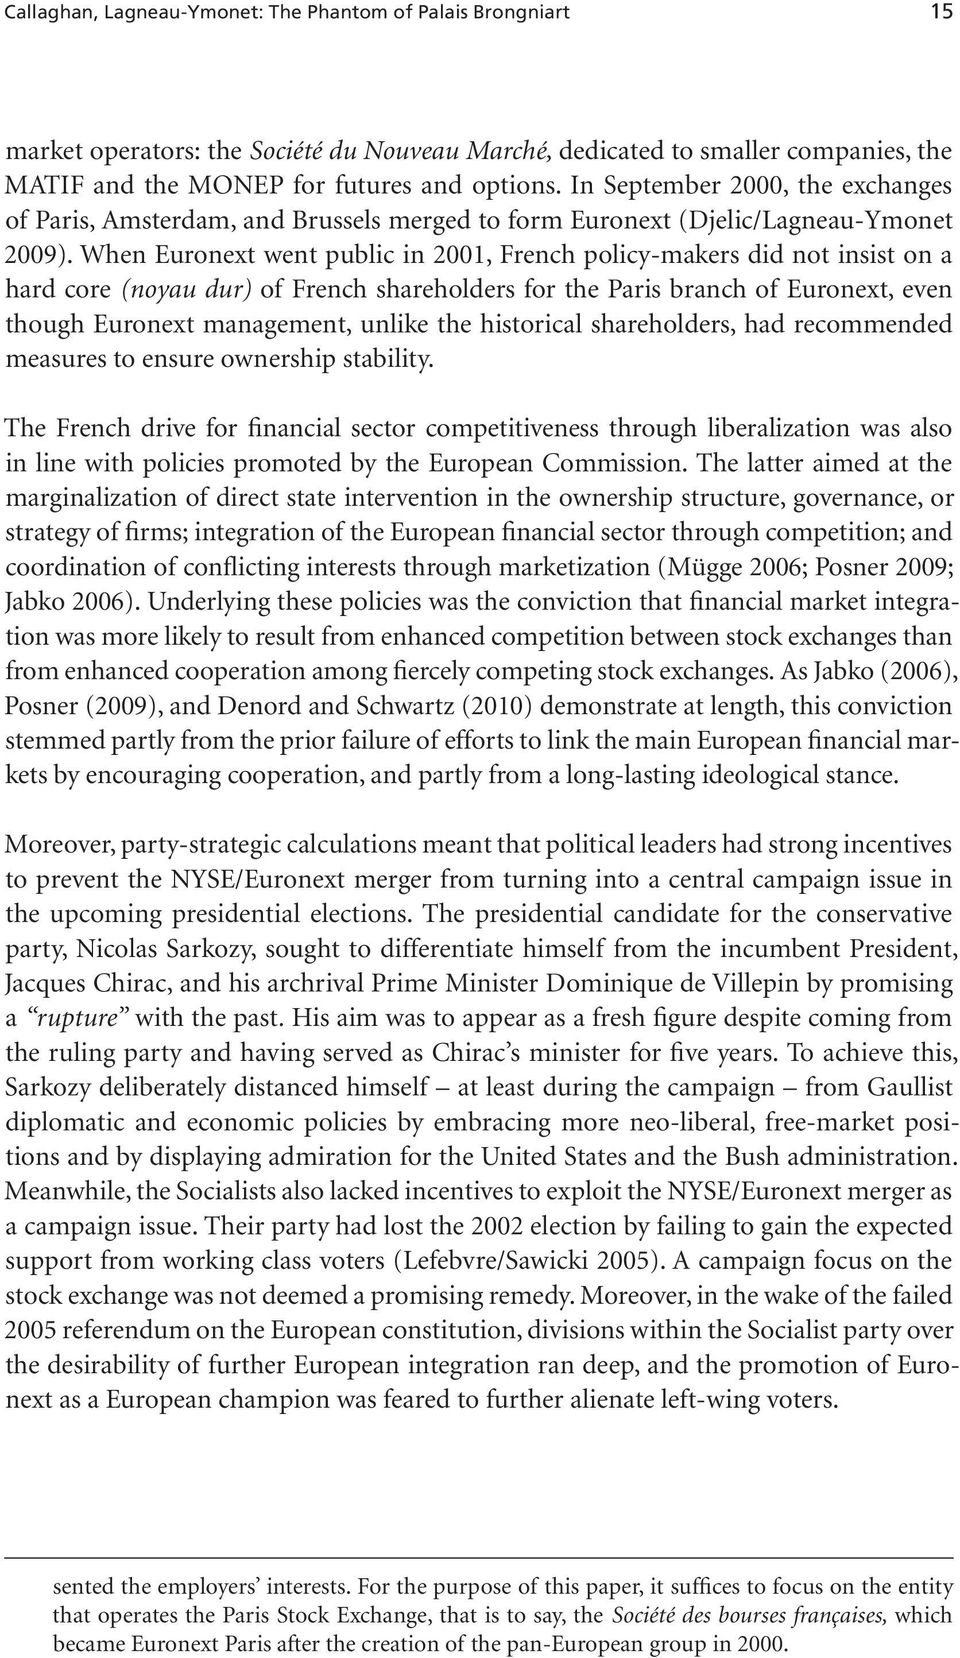 When Euronext went public in 2001, French policy-makers did not insist on a hard core (noyau dur) of French shareholders for the Paris branch of Euronext, even though Euronext management, unlike the